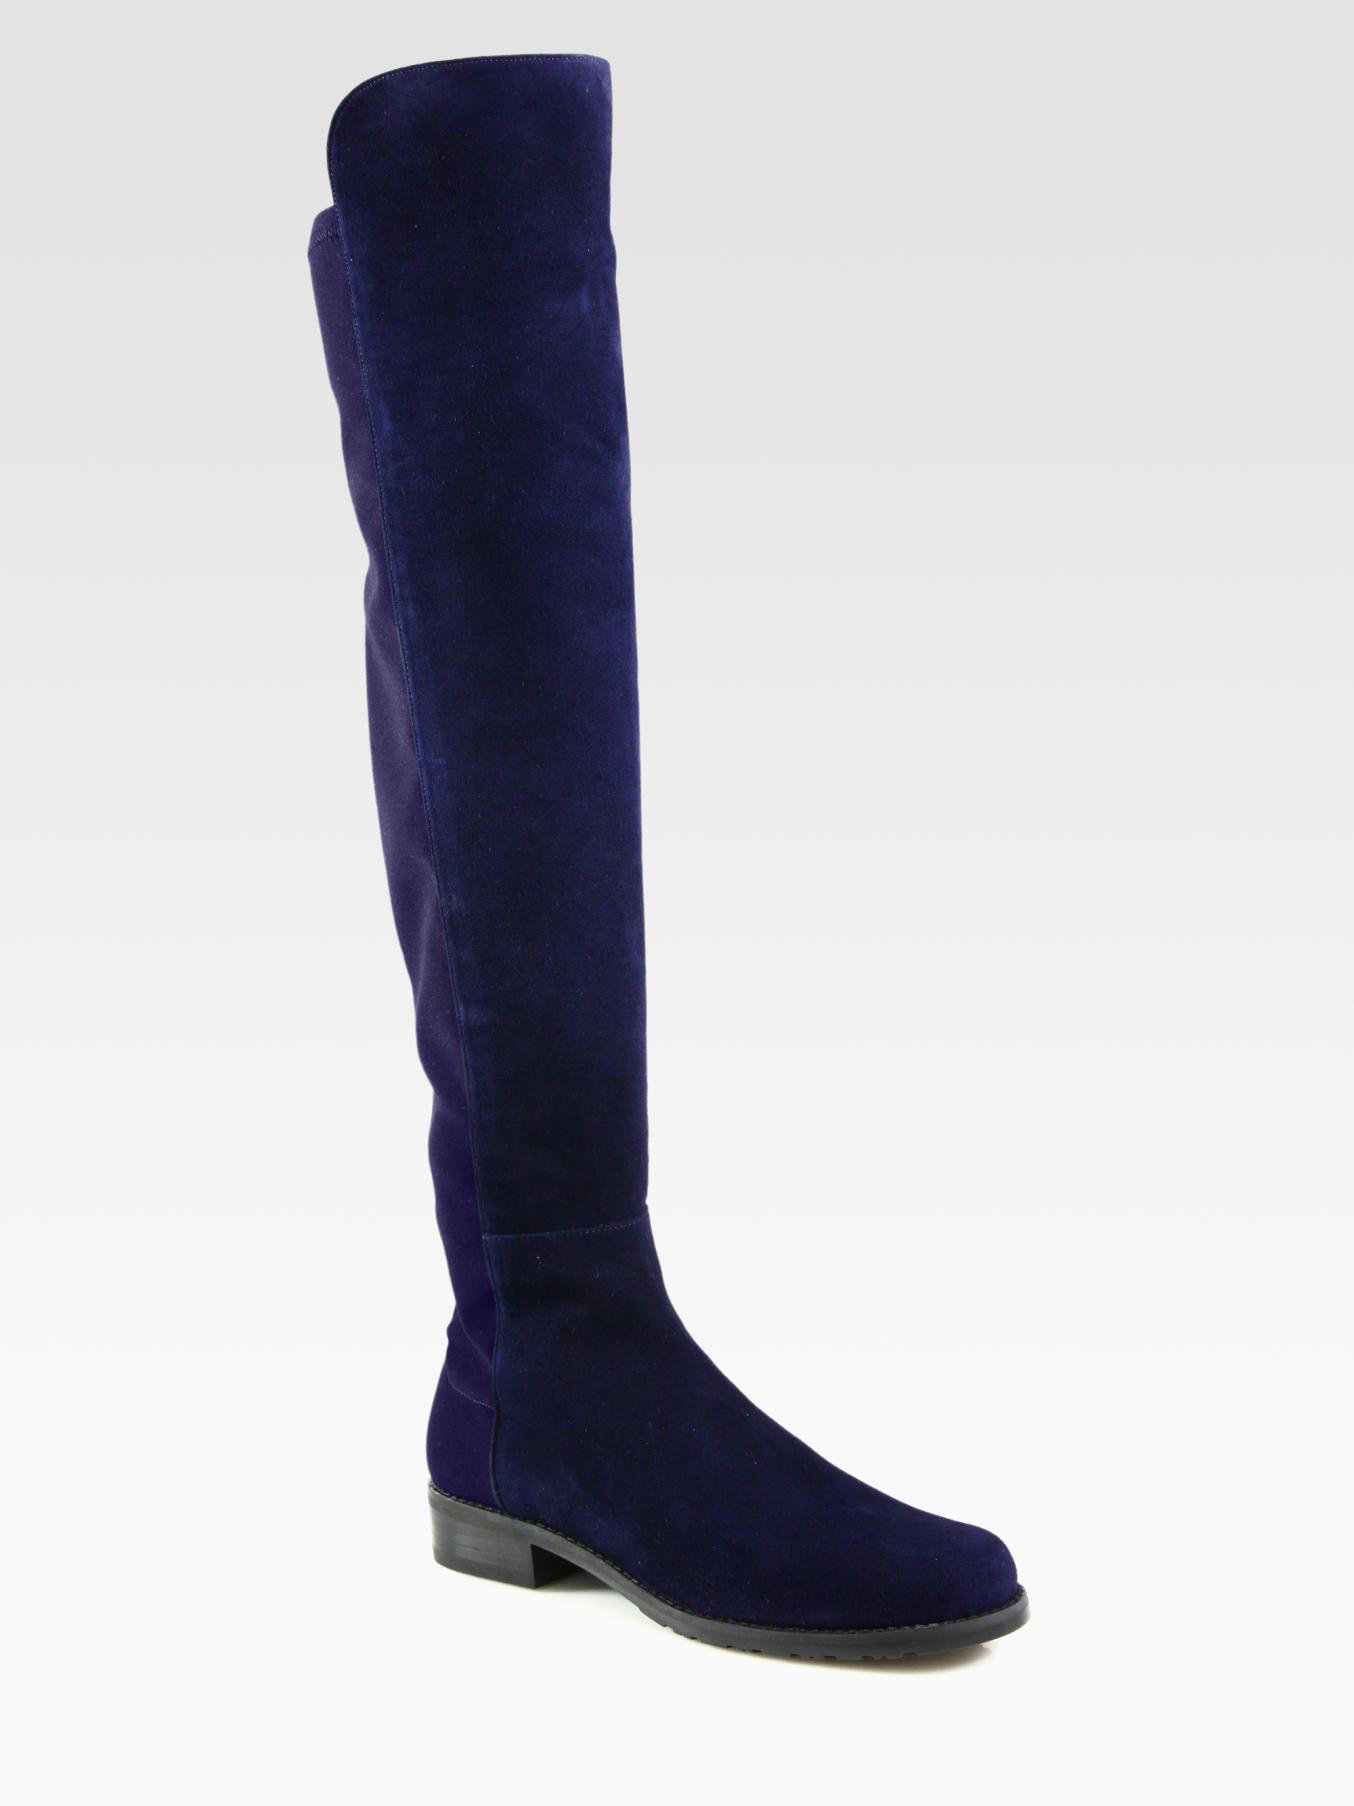 Free shipping and returns on women's boots at submafusro.ml, including riding, knee-high boots, waterproof, weatherproof and rain boots from the best brands - UGG, Timberland, Hunter and more.